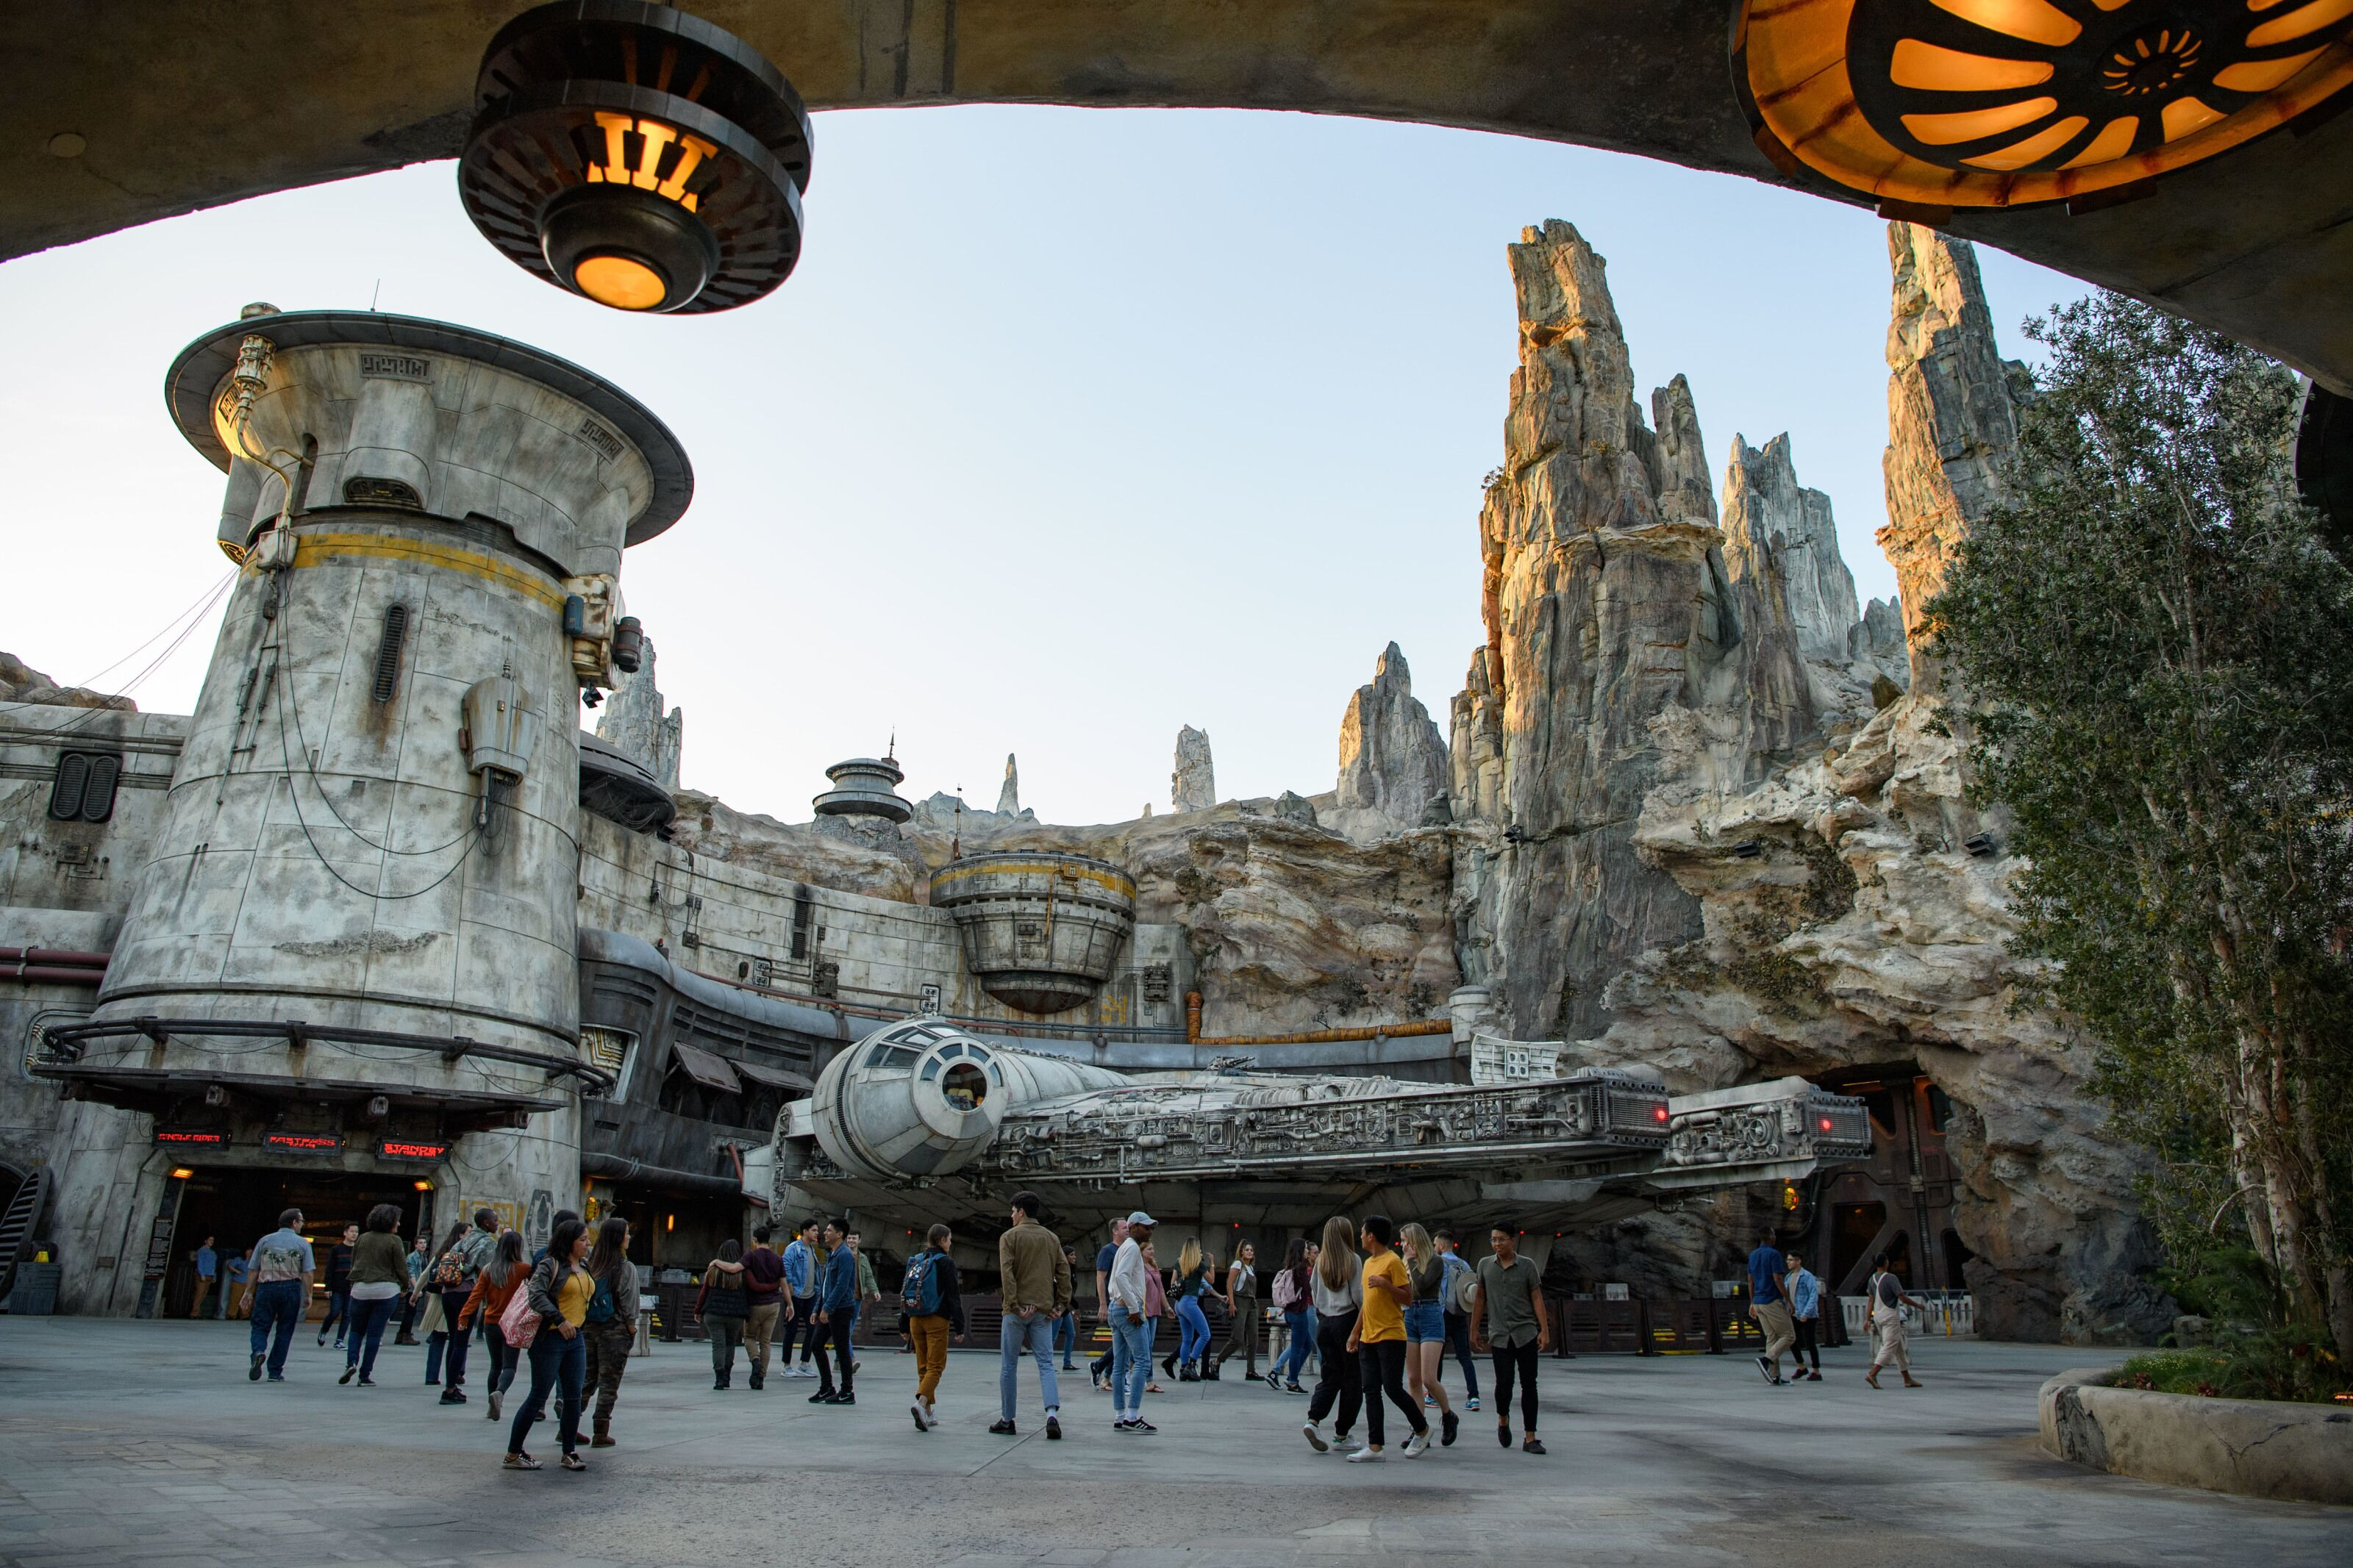 Star Wars fans are stealing stuff from Galaxy's Edge and selling it on eBay